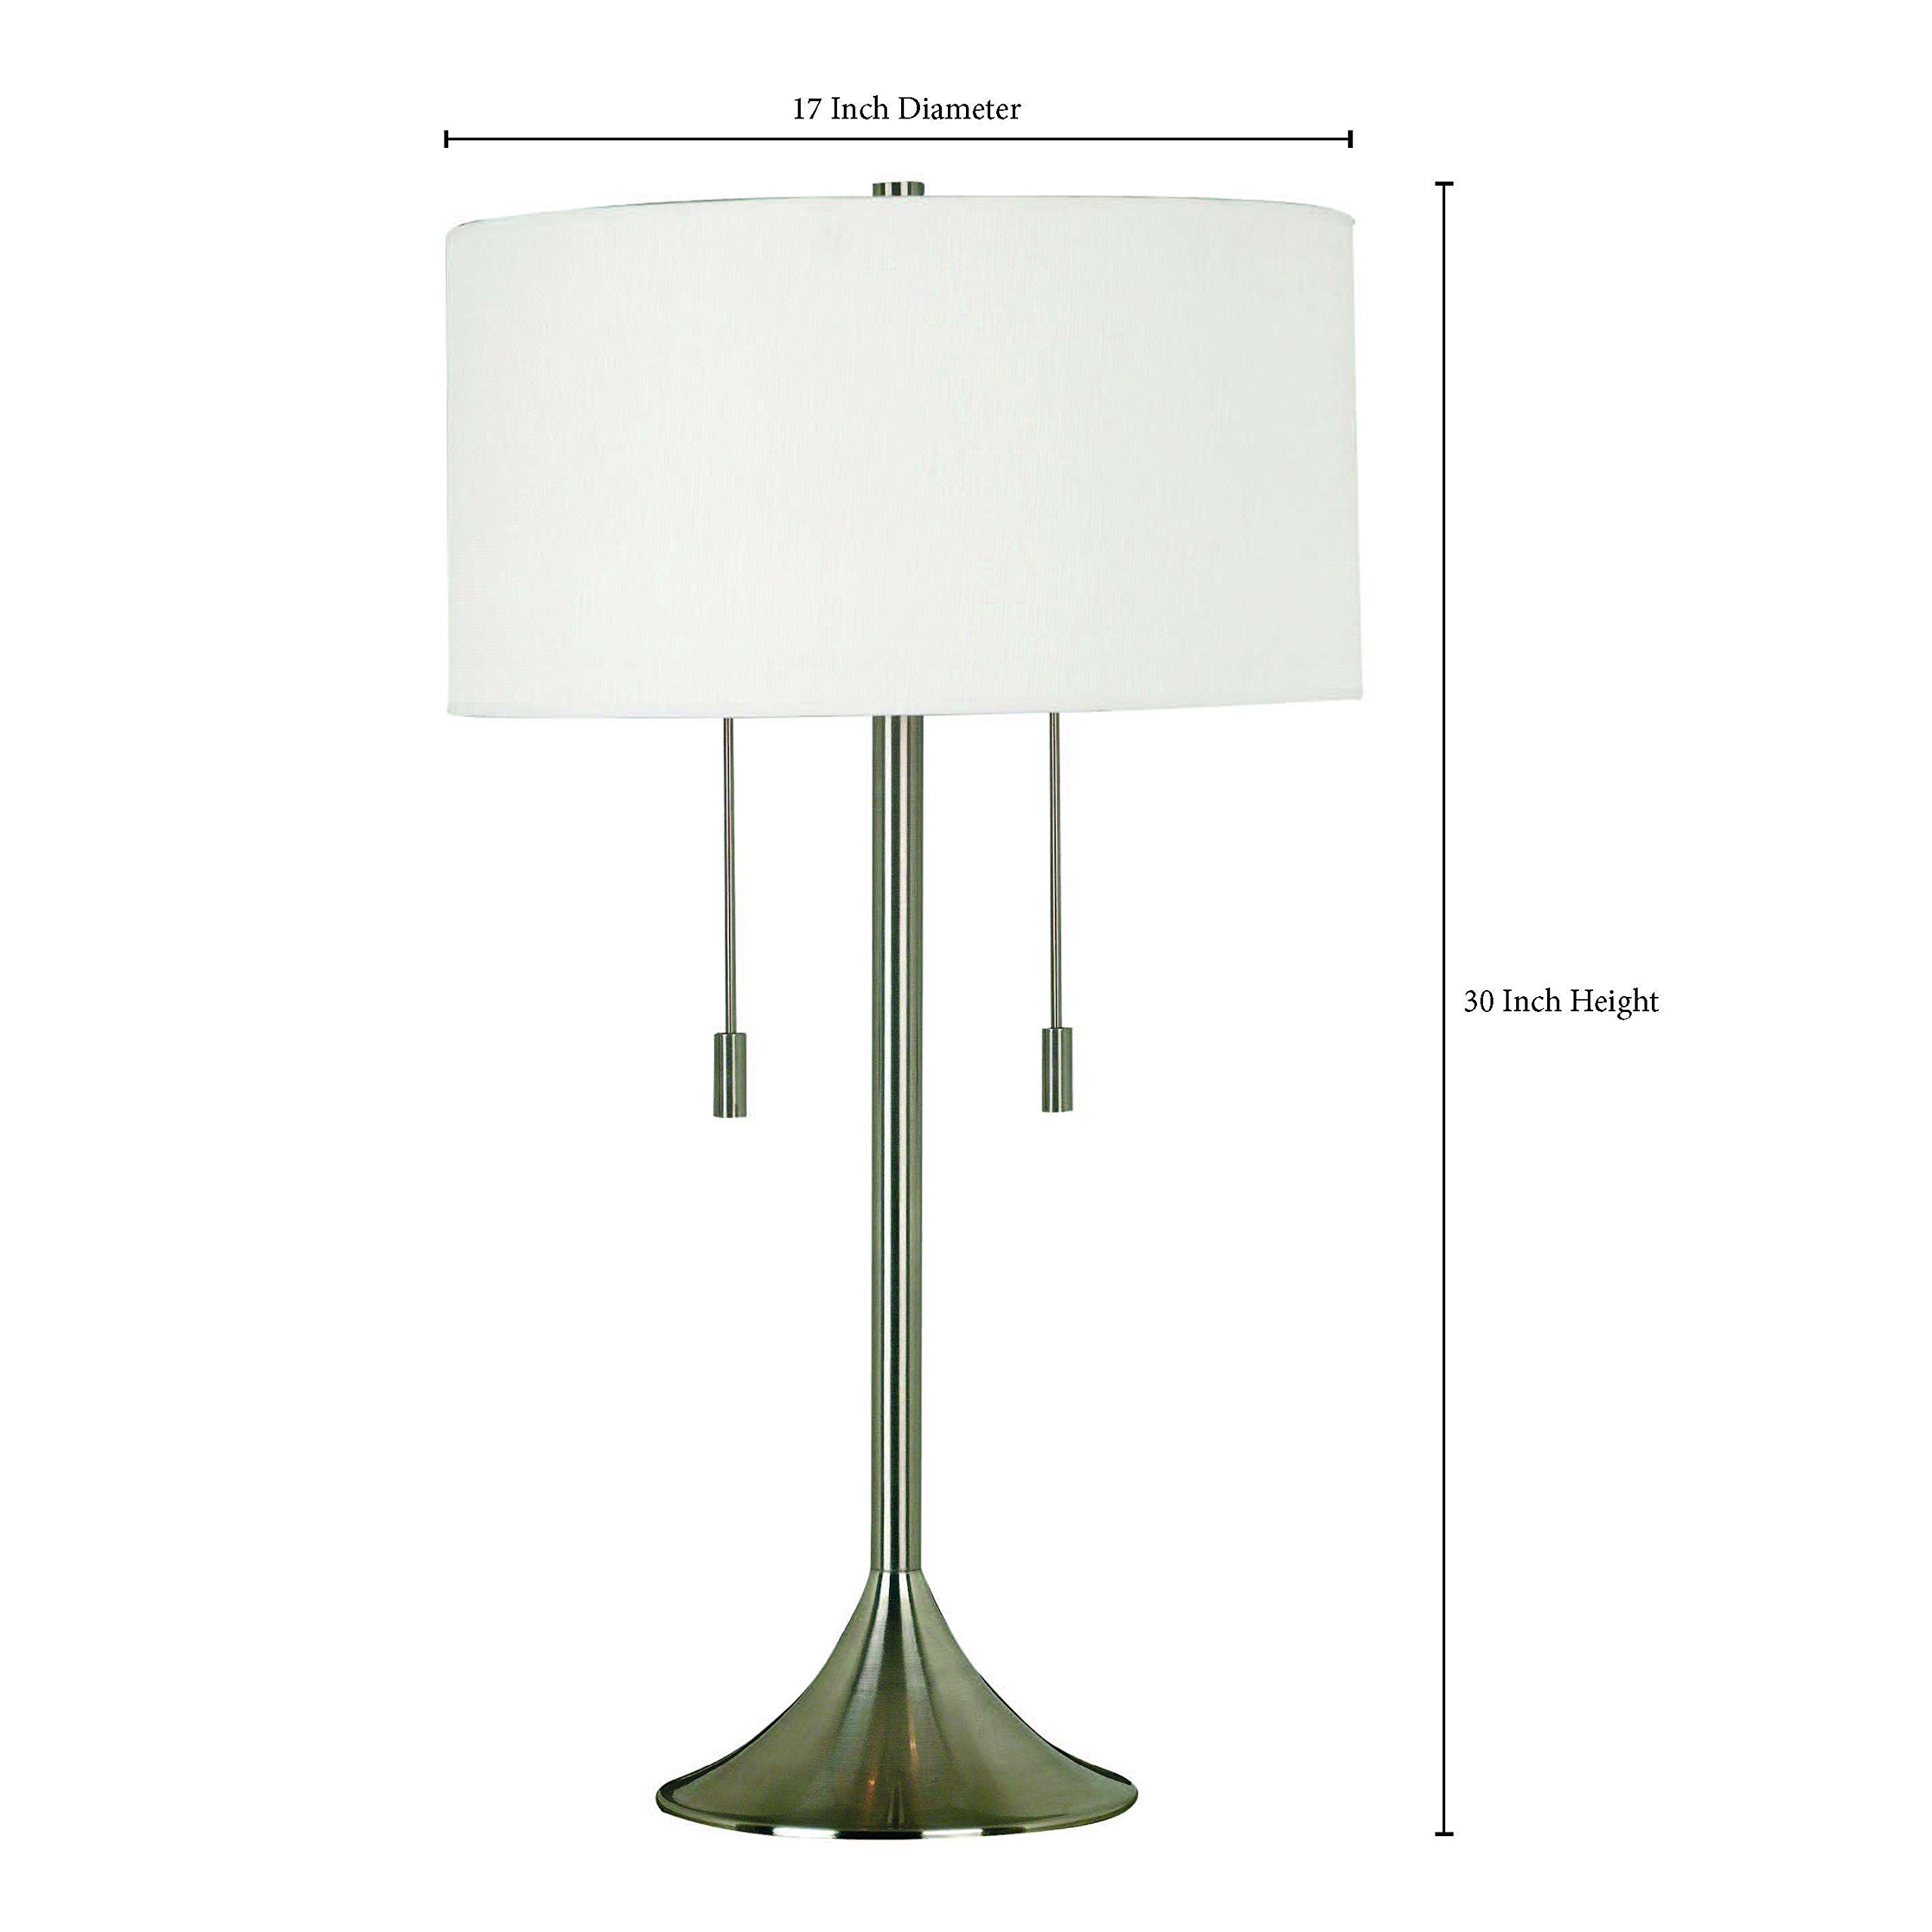 Kenroy Home 21404BS Stowe Table Lamp In Brushed Steel Finish With A White Textured Drum Shade, 17'' x 17'' x 28''